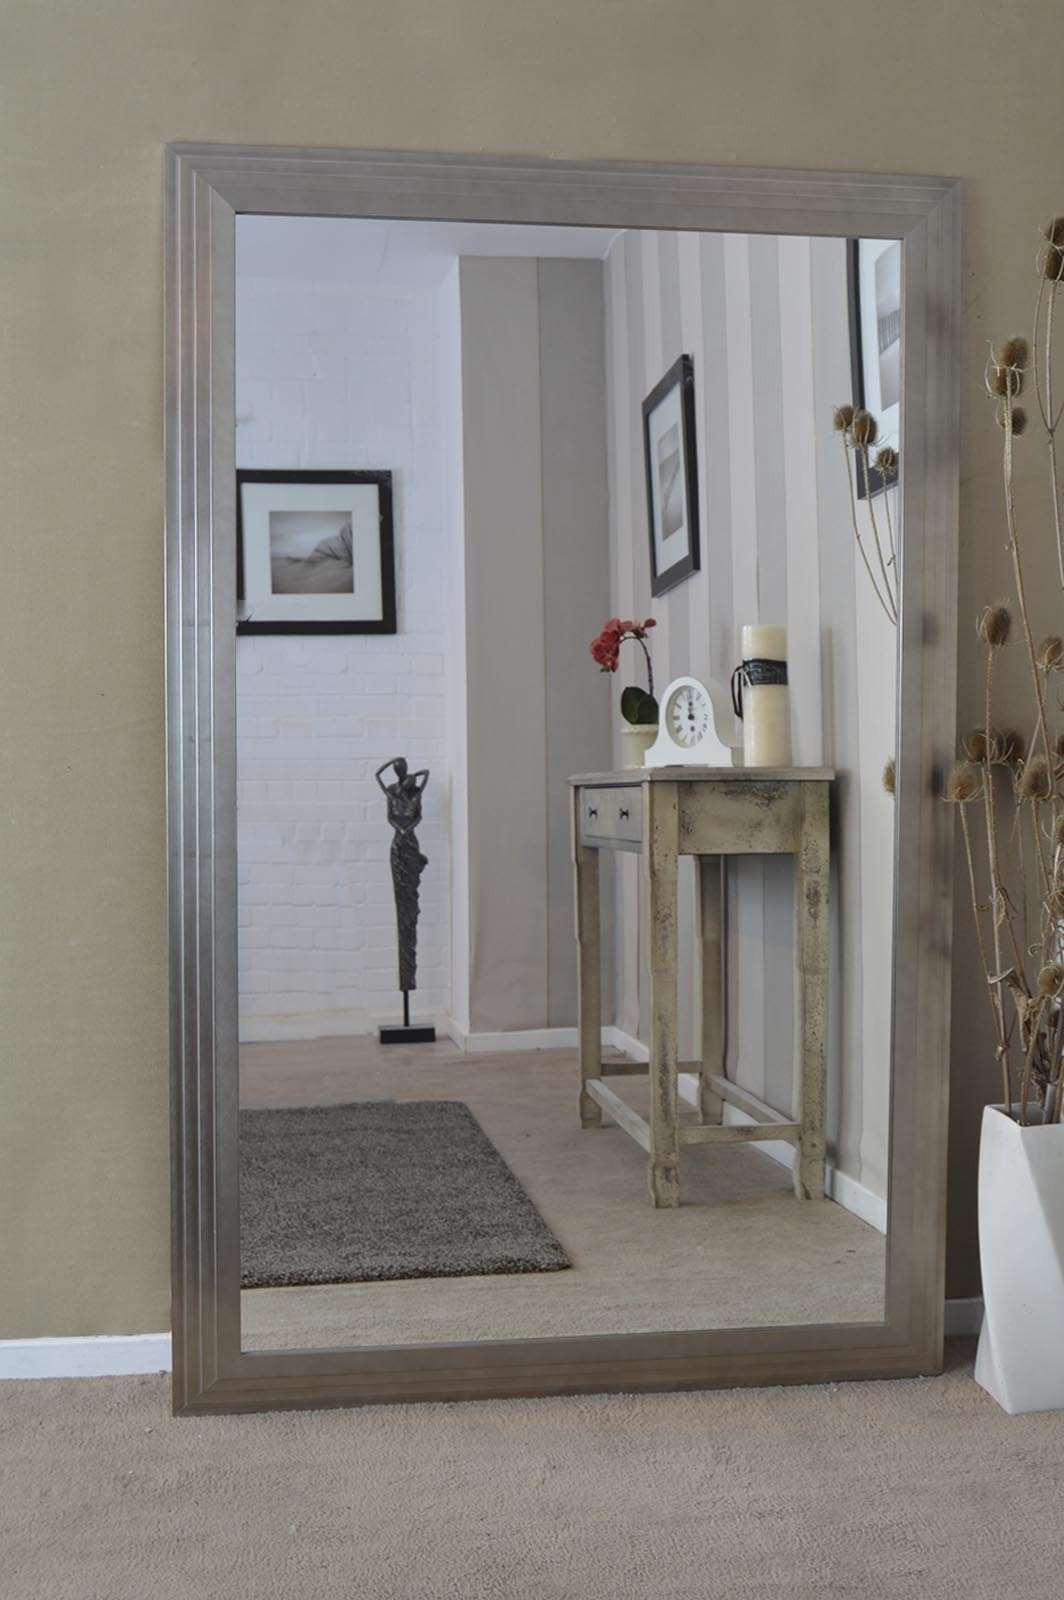 Long Wall Mirrors Xl Long Full Length Silver Wall Floor Mirror Throughout Long Silver Wall Mirror (Image 11 of 15)